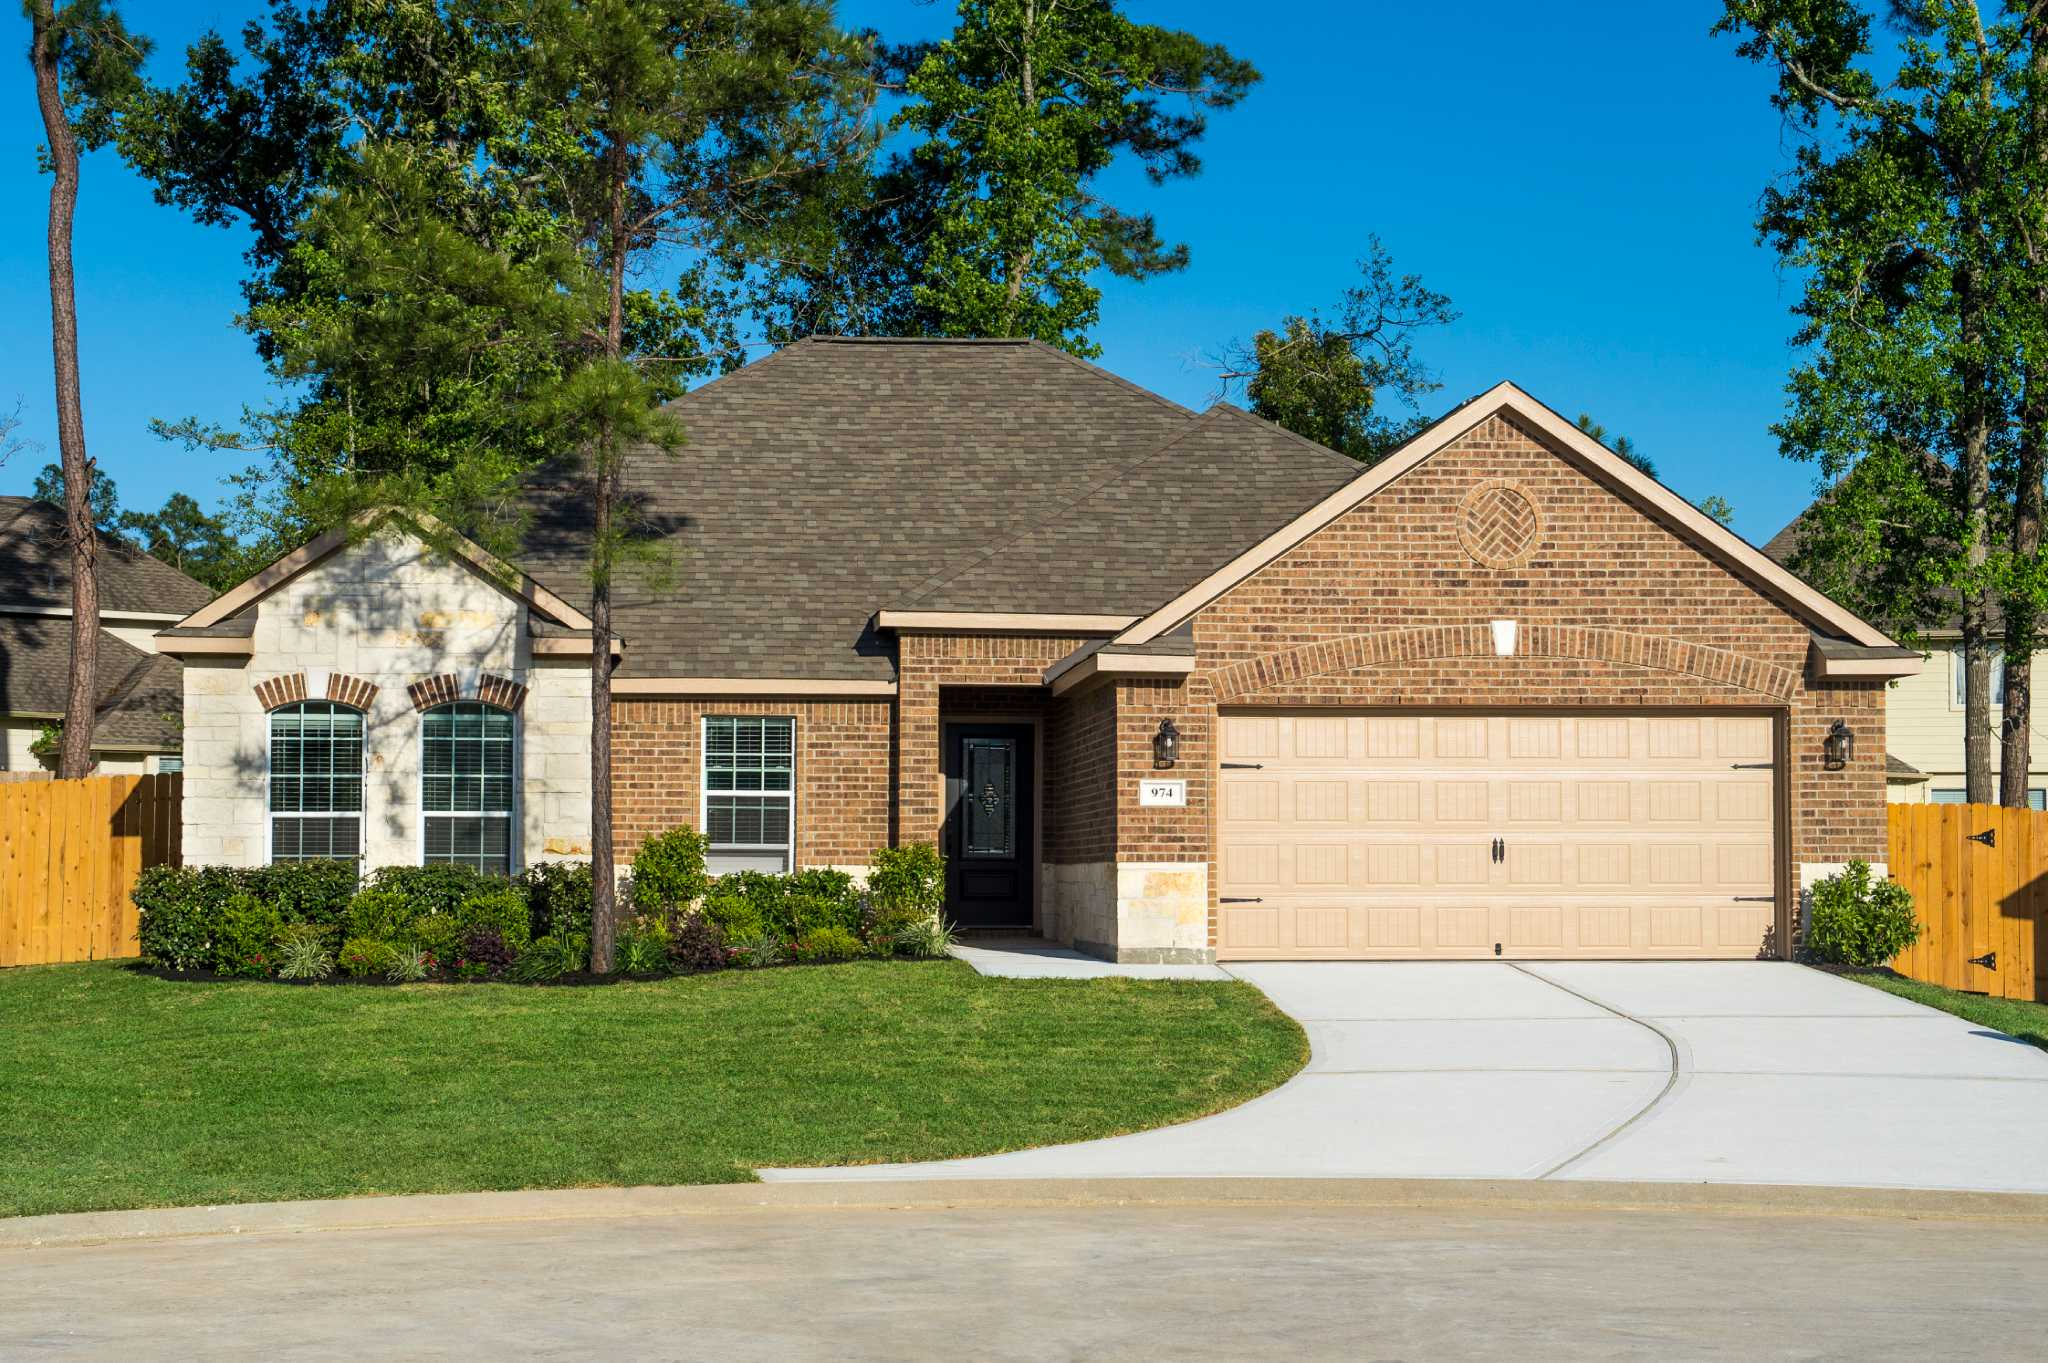 LGI Homes offers home selection in Magnolia Houston Chronicle